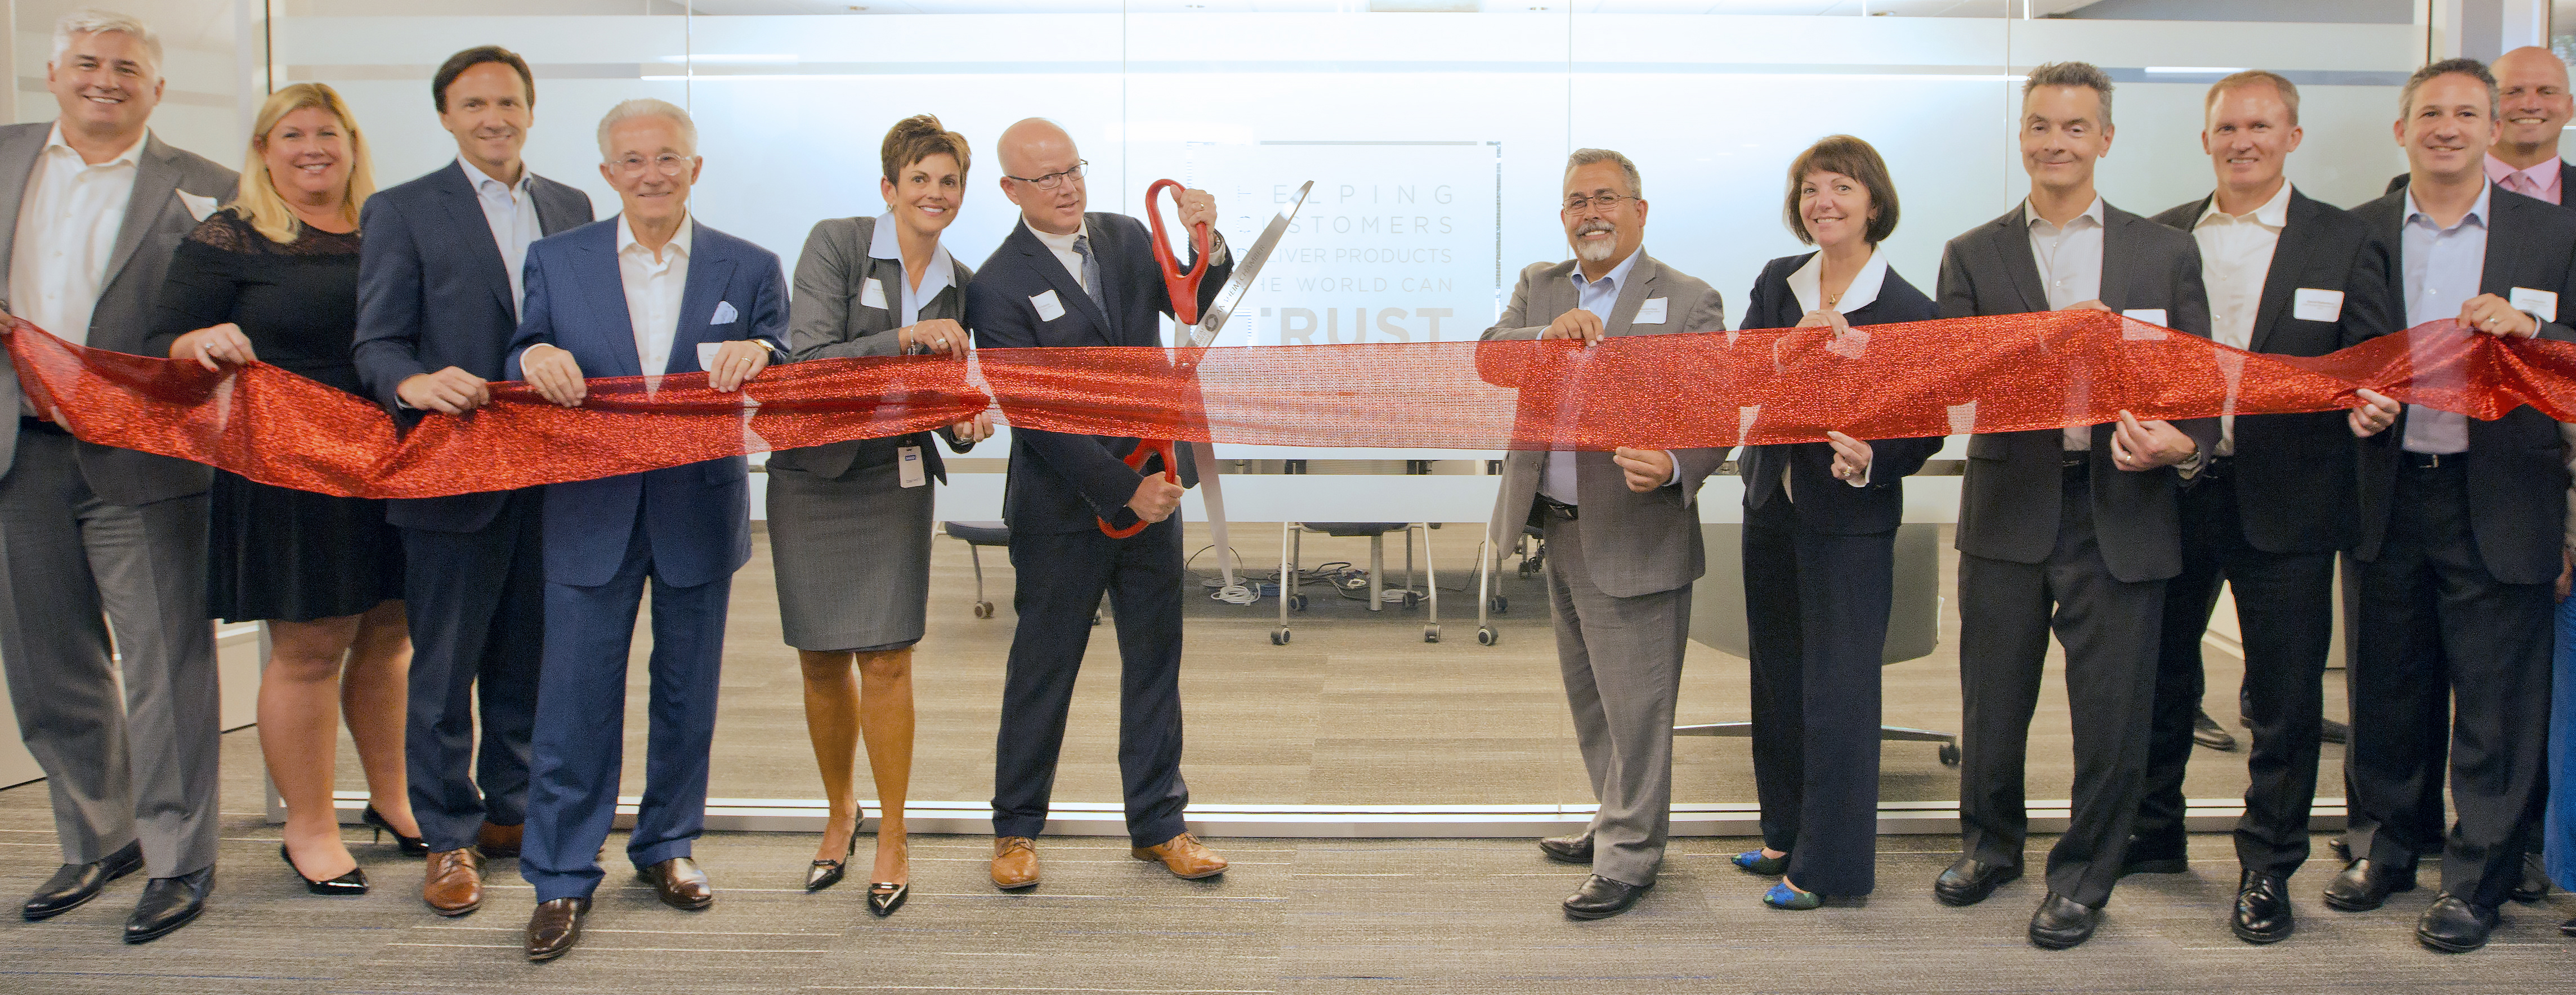 NTS Opens Its New Corporate Center in Anaheim | Business Wire